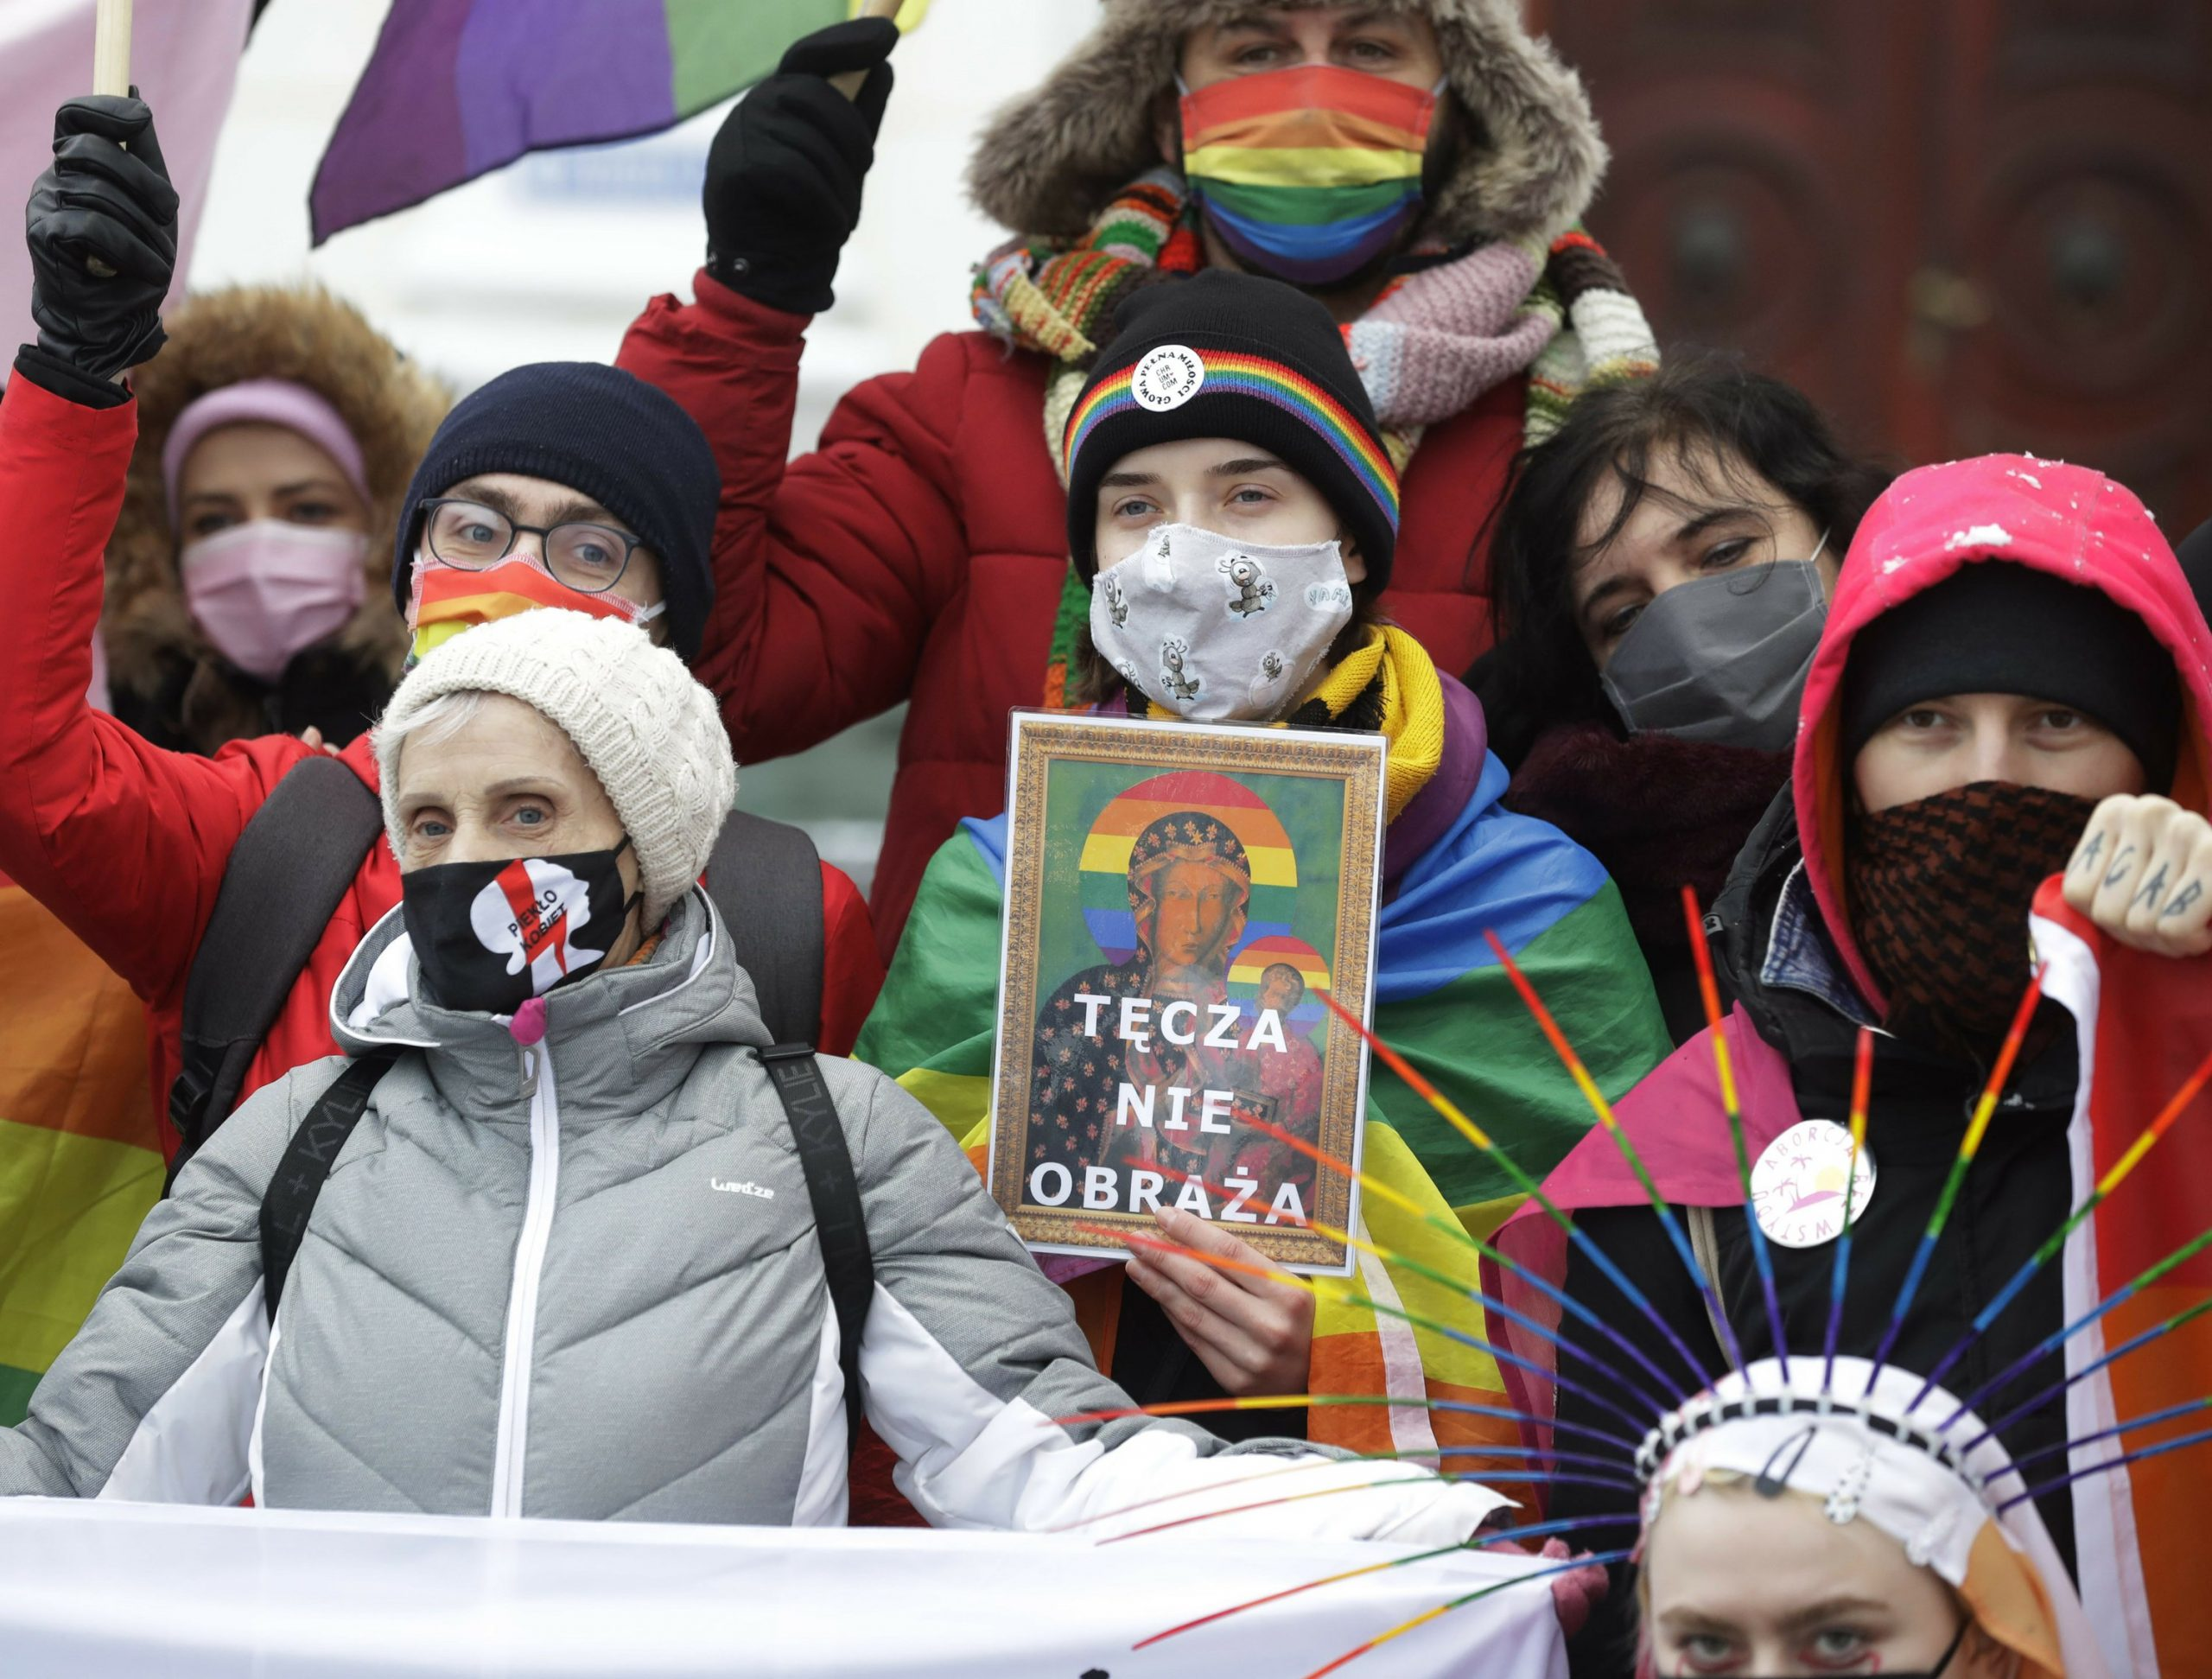 The sacrilege trial begins over LGBT rainbow placement on a Polish icon